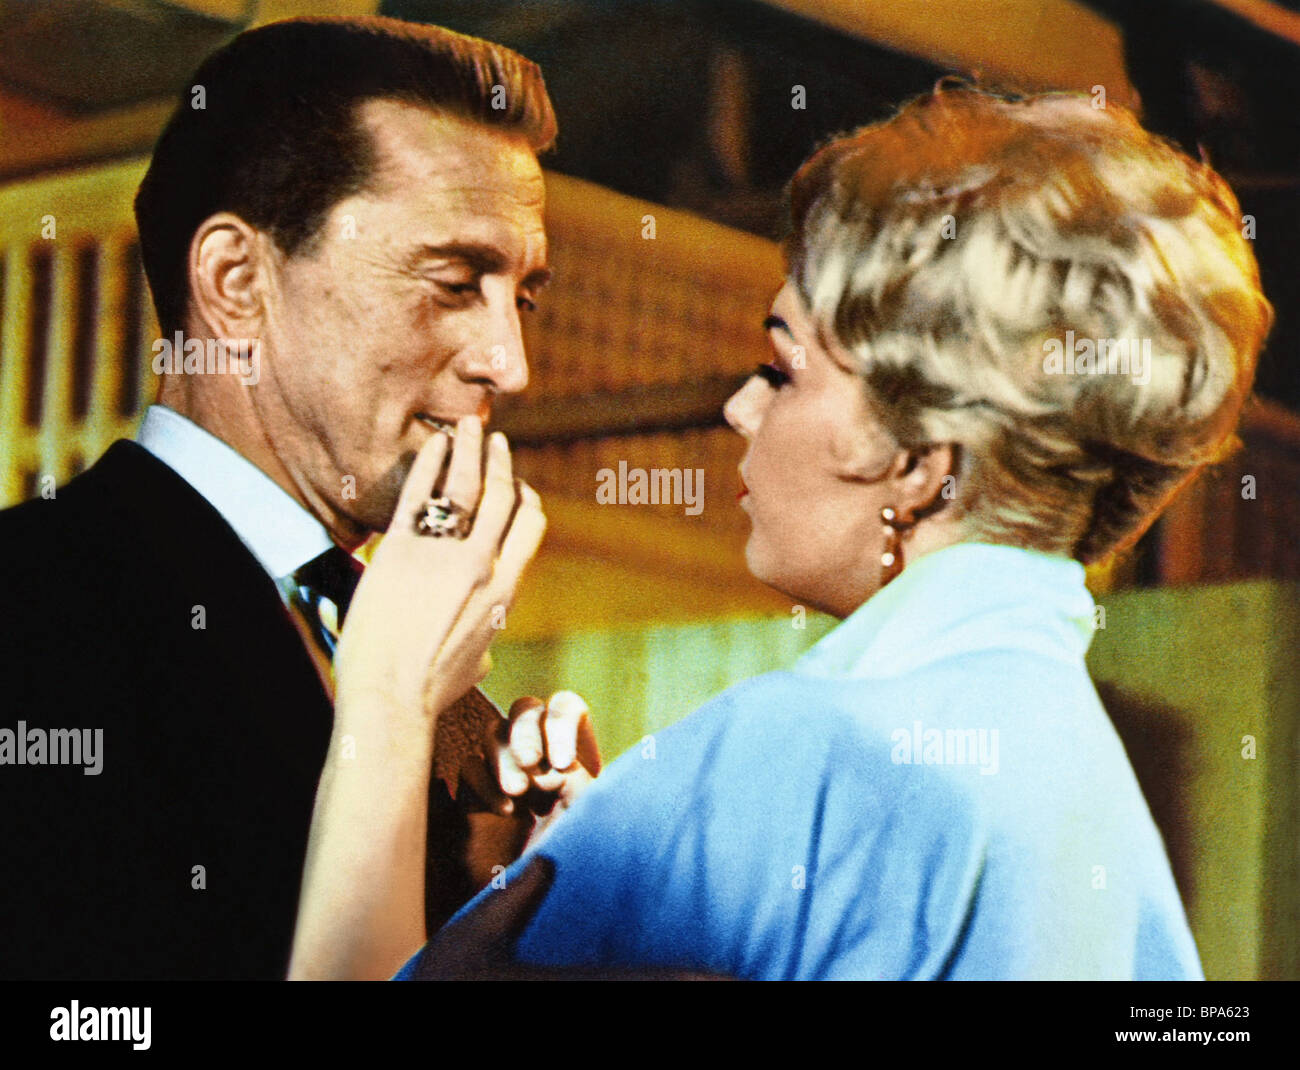 kirk douglas movie strangers when we meet